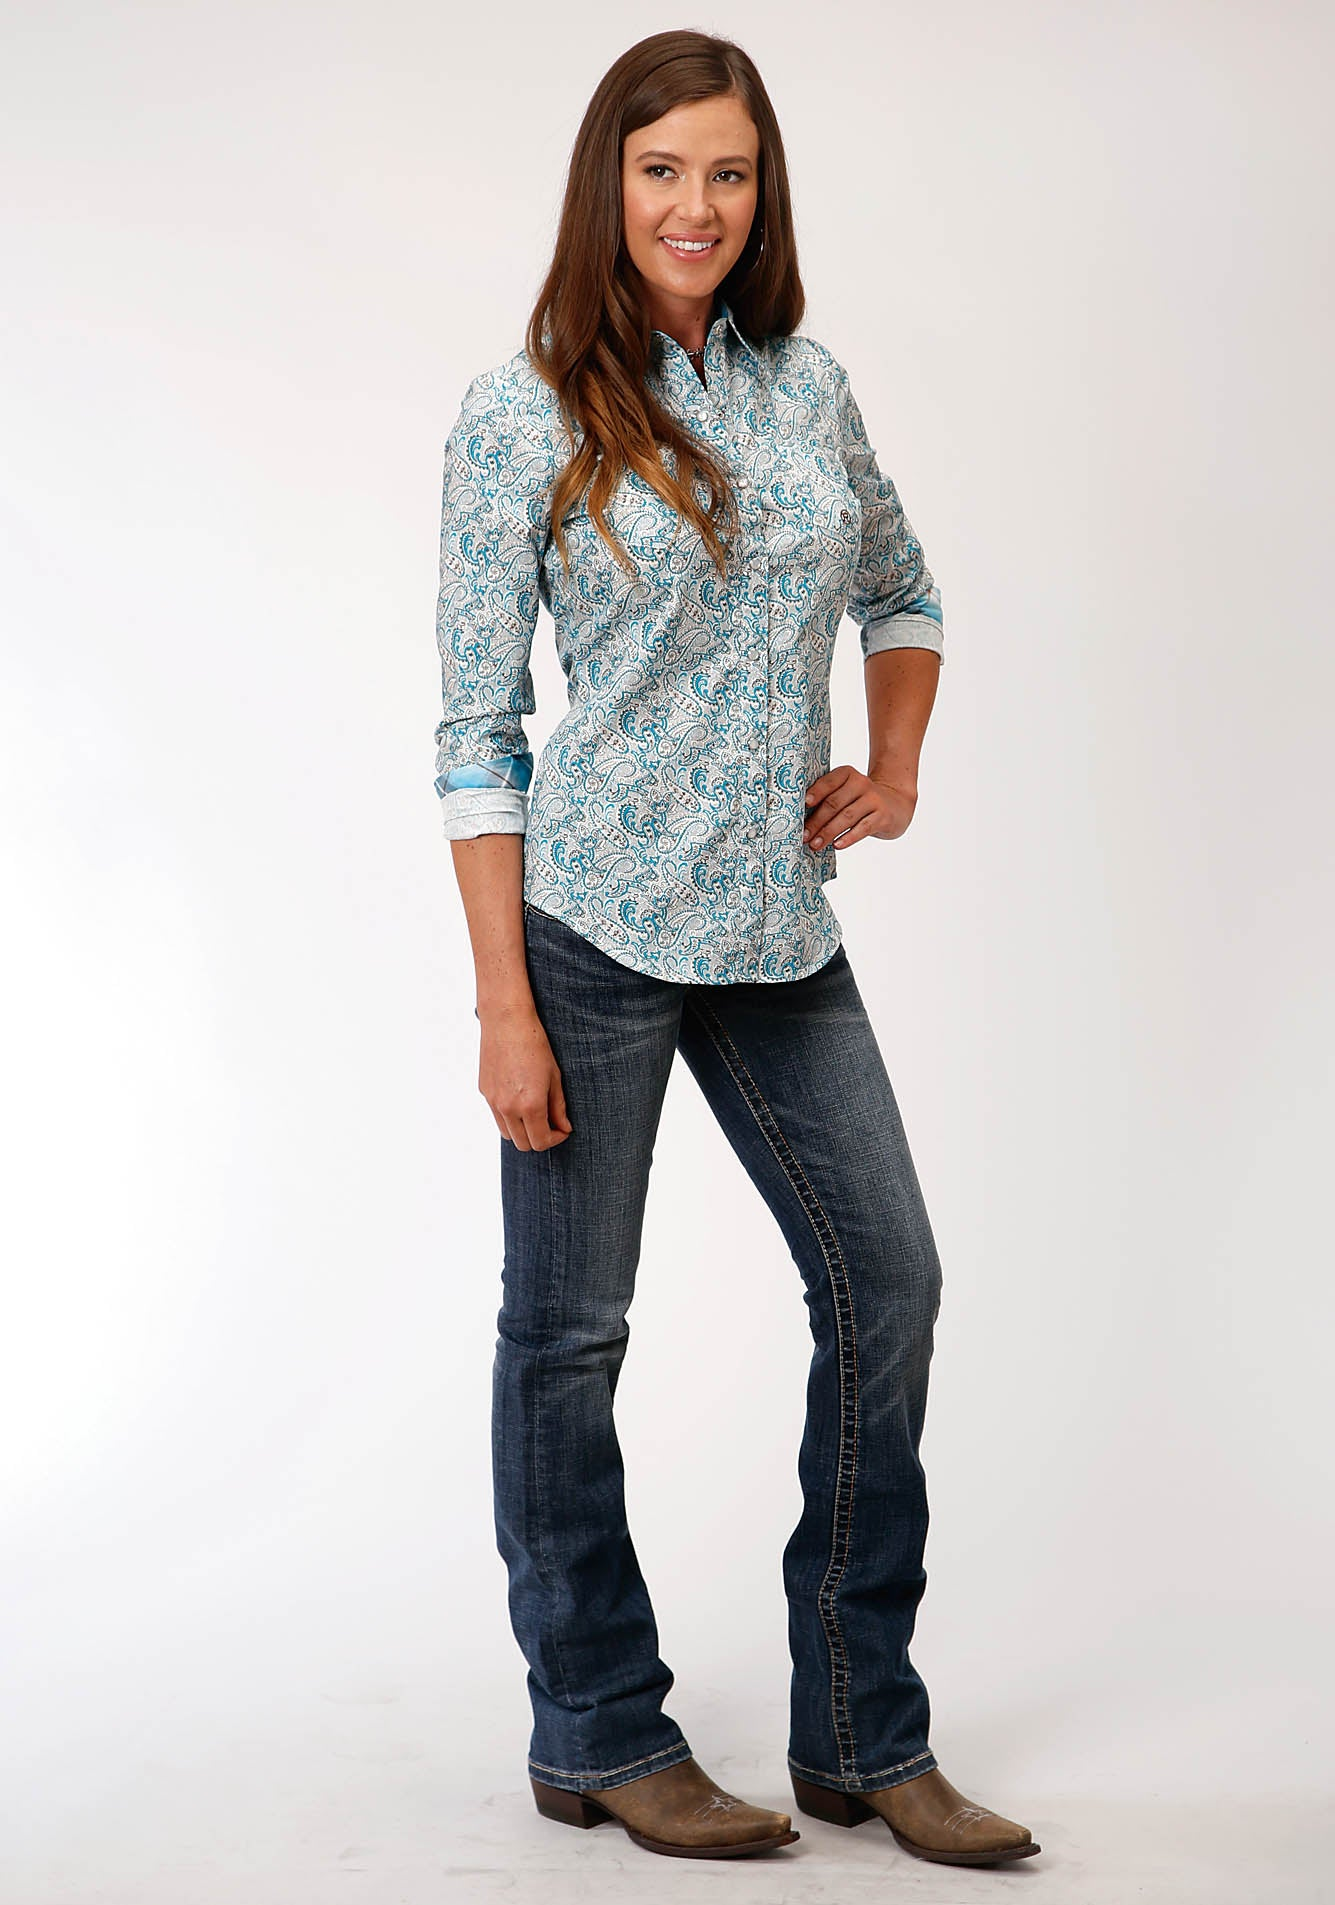 ROPER WOMENS BLUE 00155 TURQ PAISLEY LADIES AMARILLO COLLECTION - DESERT SKY LONG SLEEVE